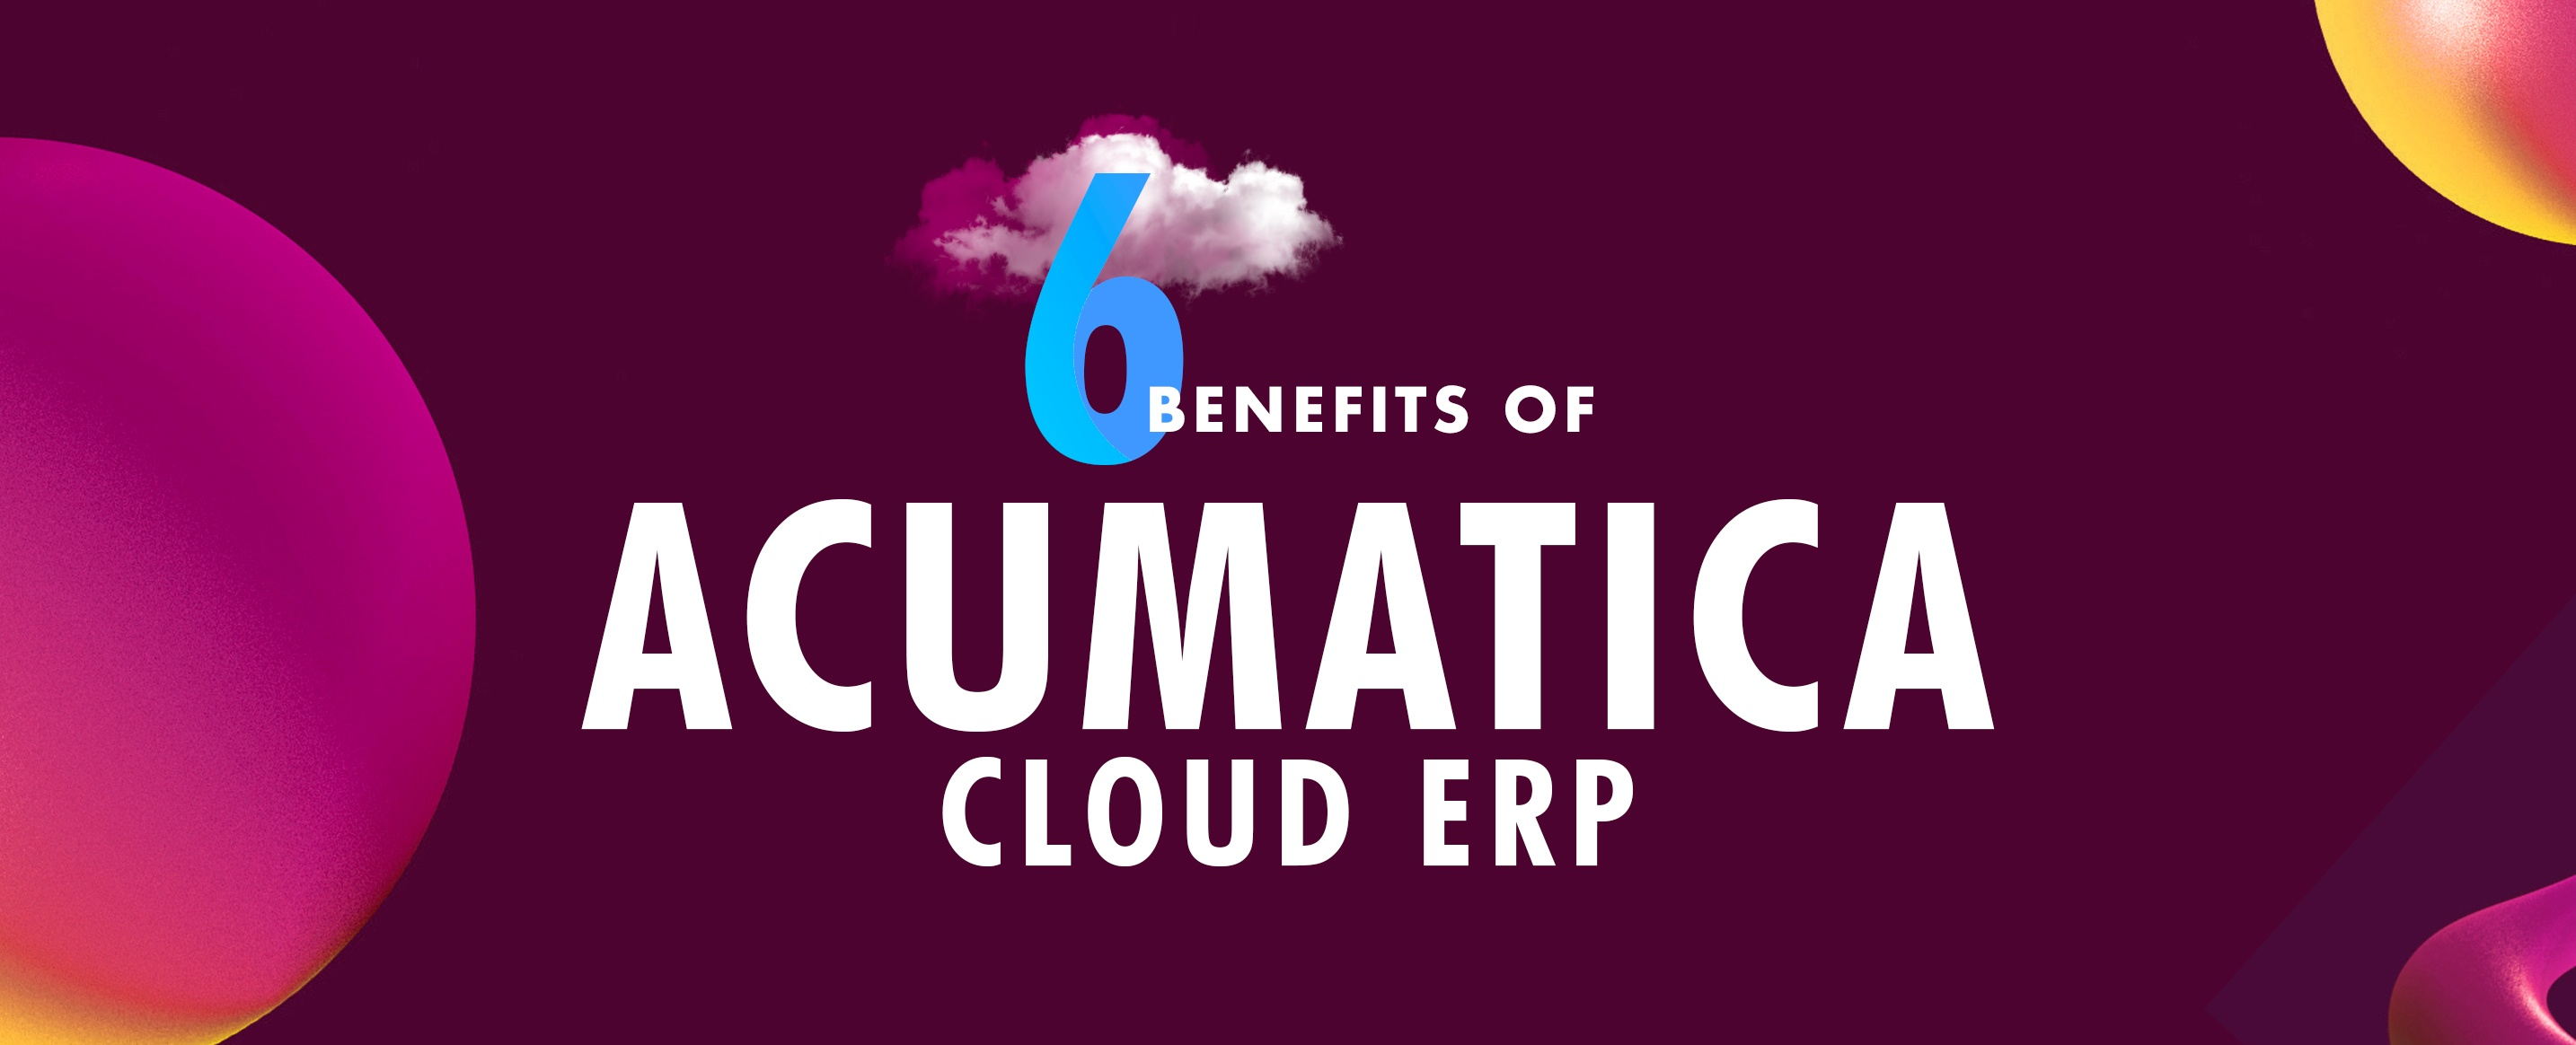 Benefits-of-Acumatica-Cloud-ERP